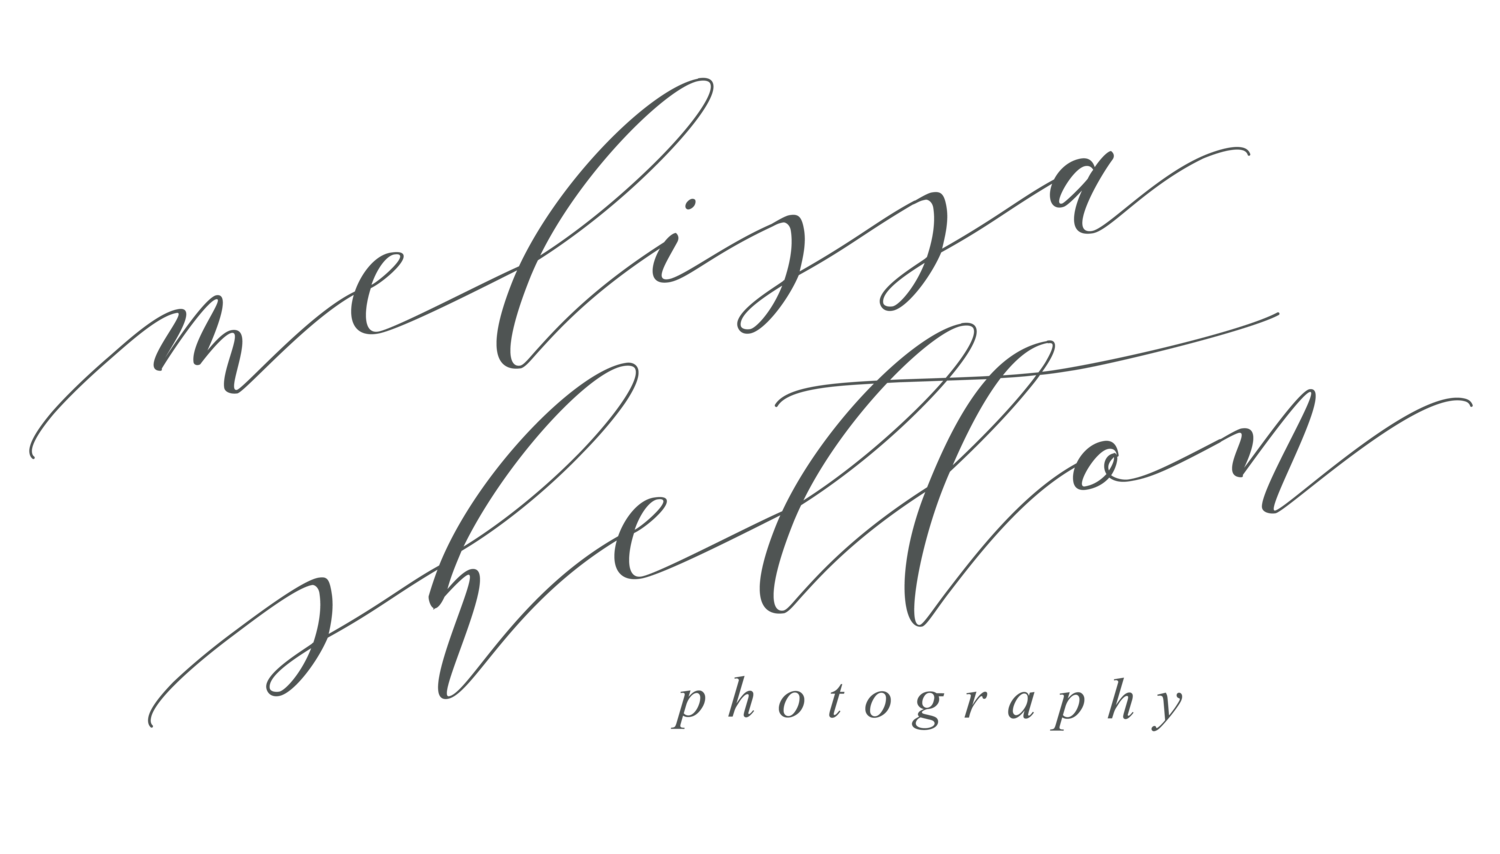 Melissa Shelton Photography